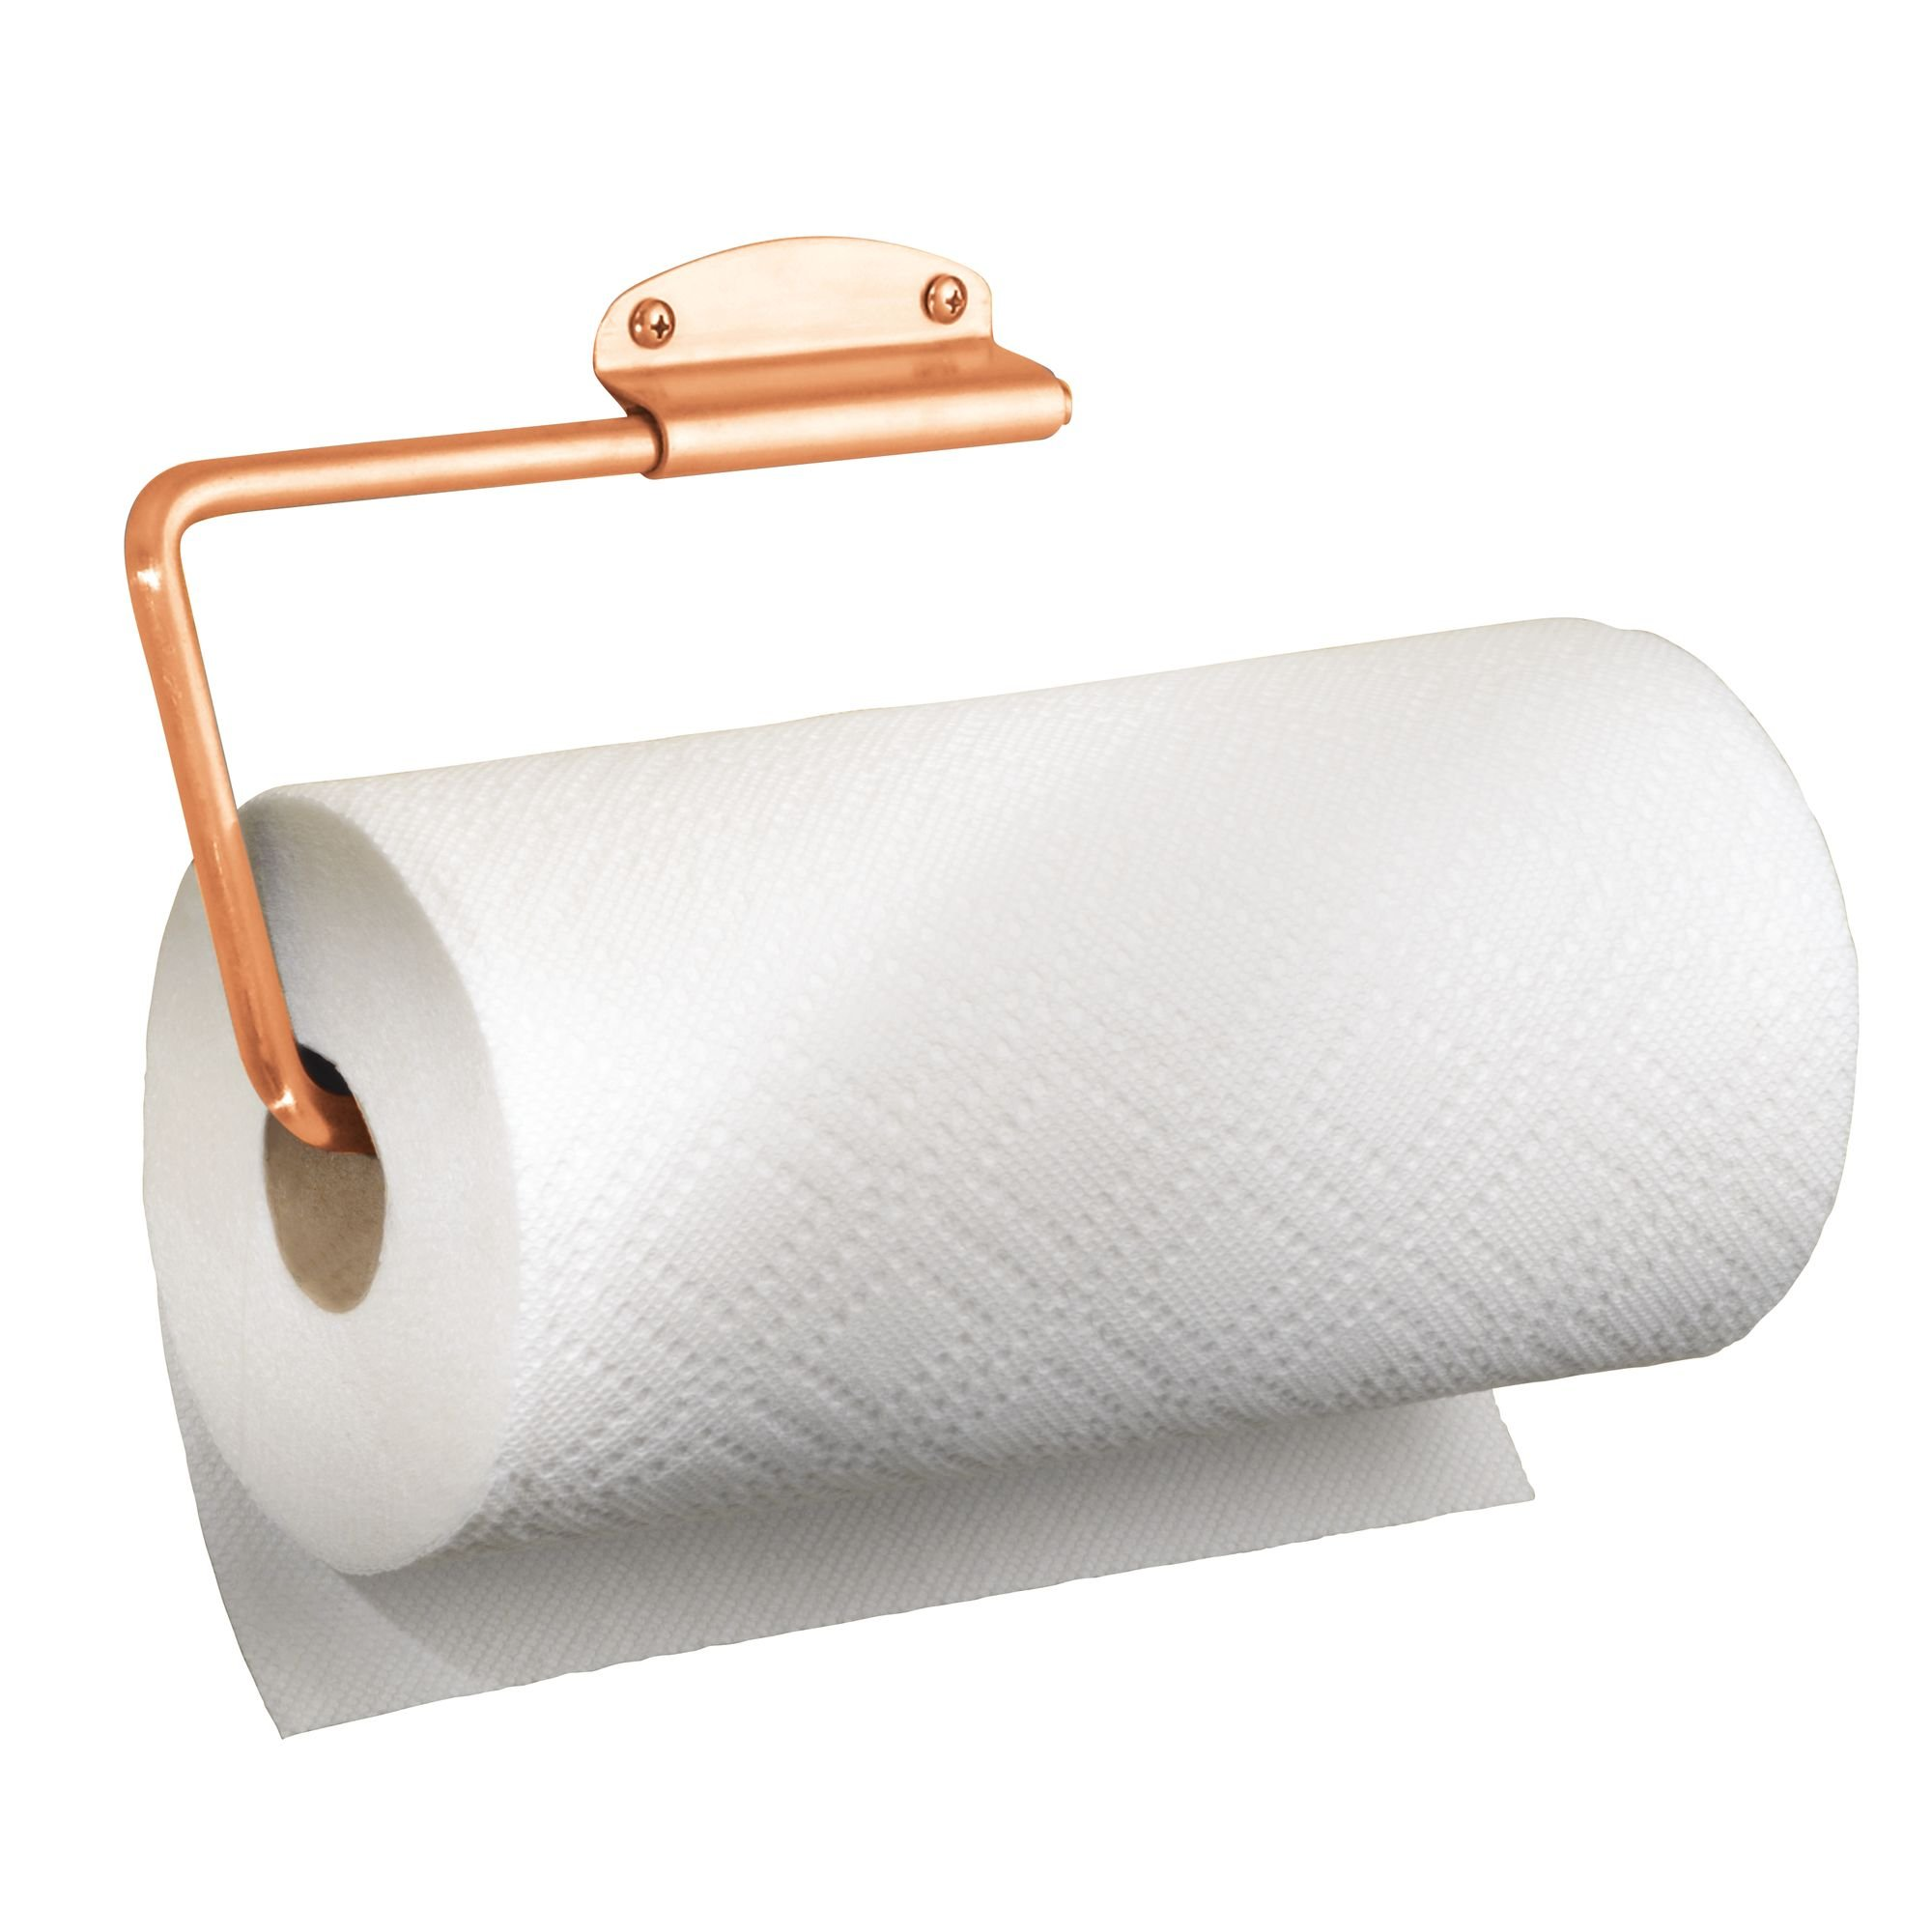 mDesign Versatile Wall Mount Paper Towel Holder & Dispenser, Mounts to Walls or Under Cabinets - for Kitchen, Pantry, Utility Room, Laundry and Garage Storage - Holds Jumbo Rolls, Steel Wire, Copper